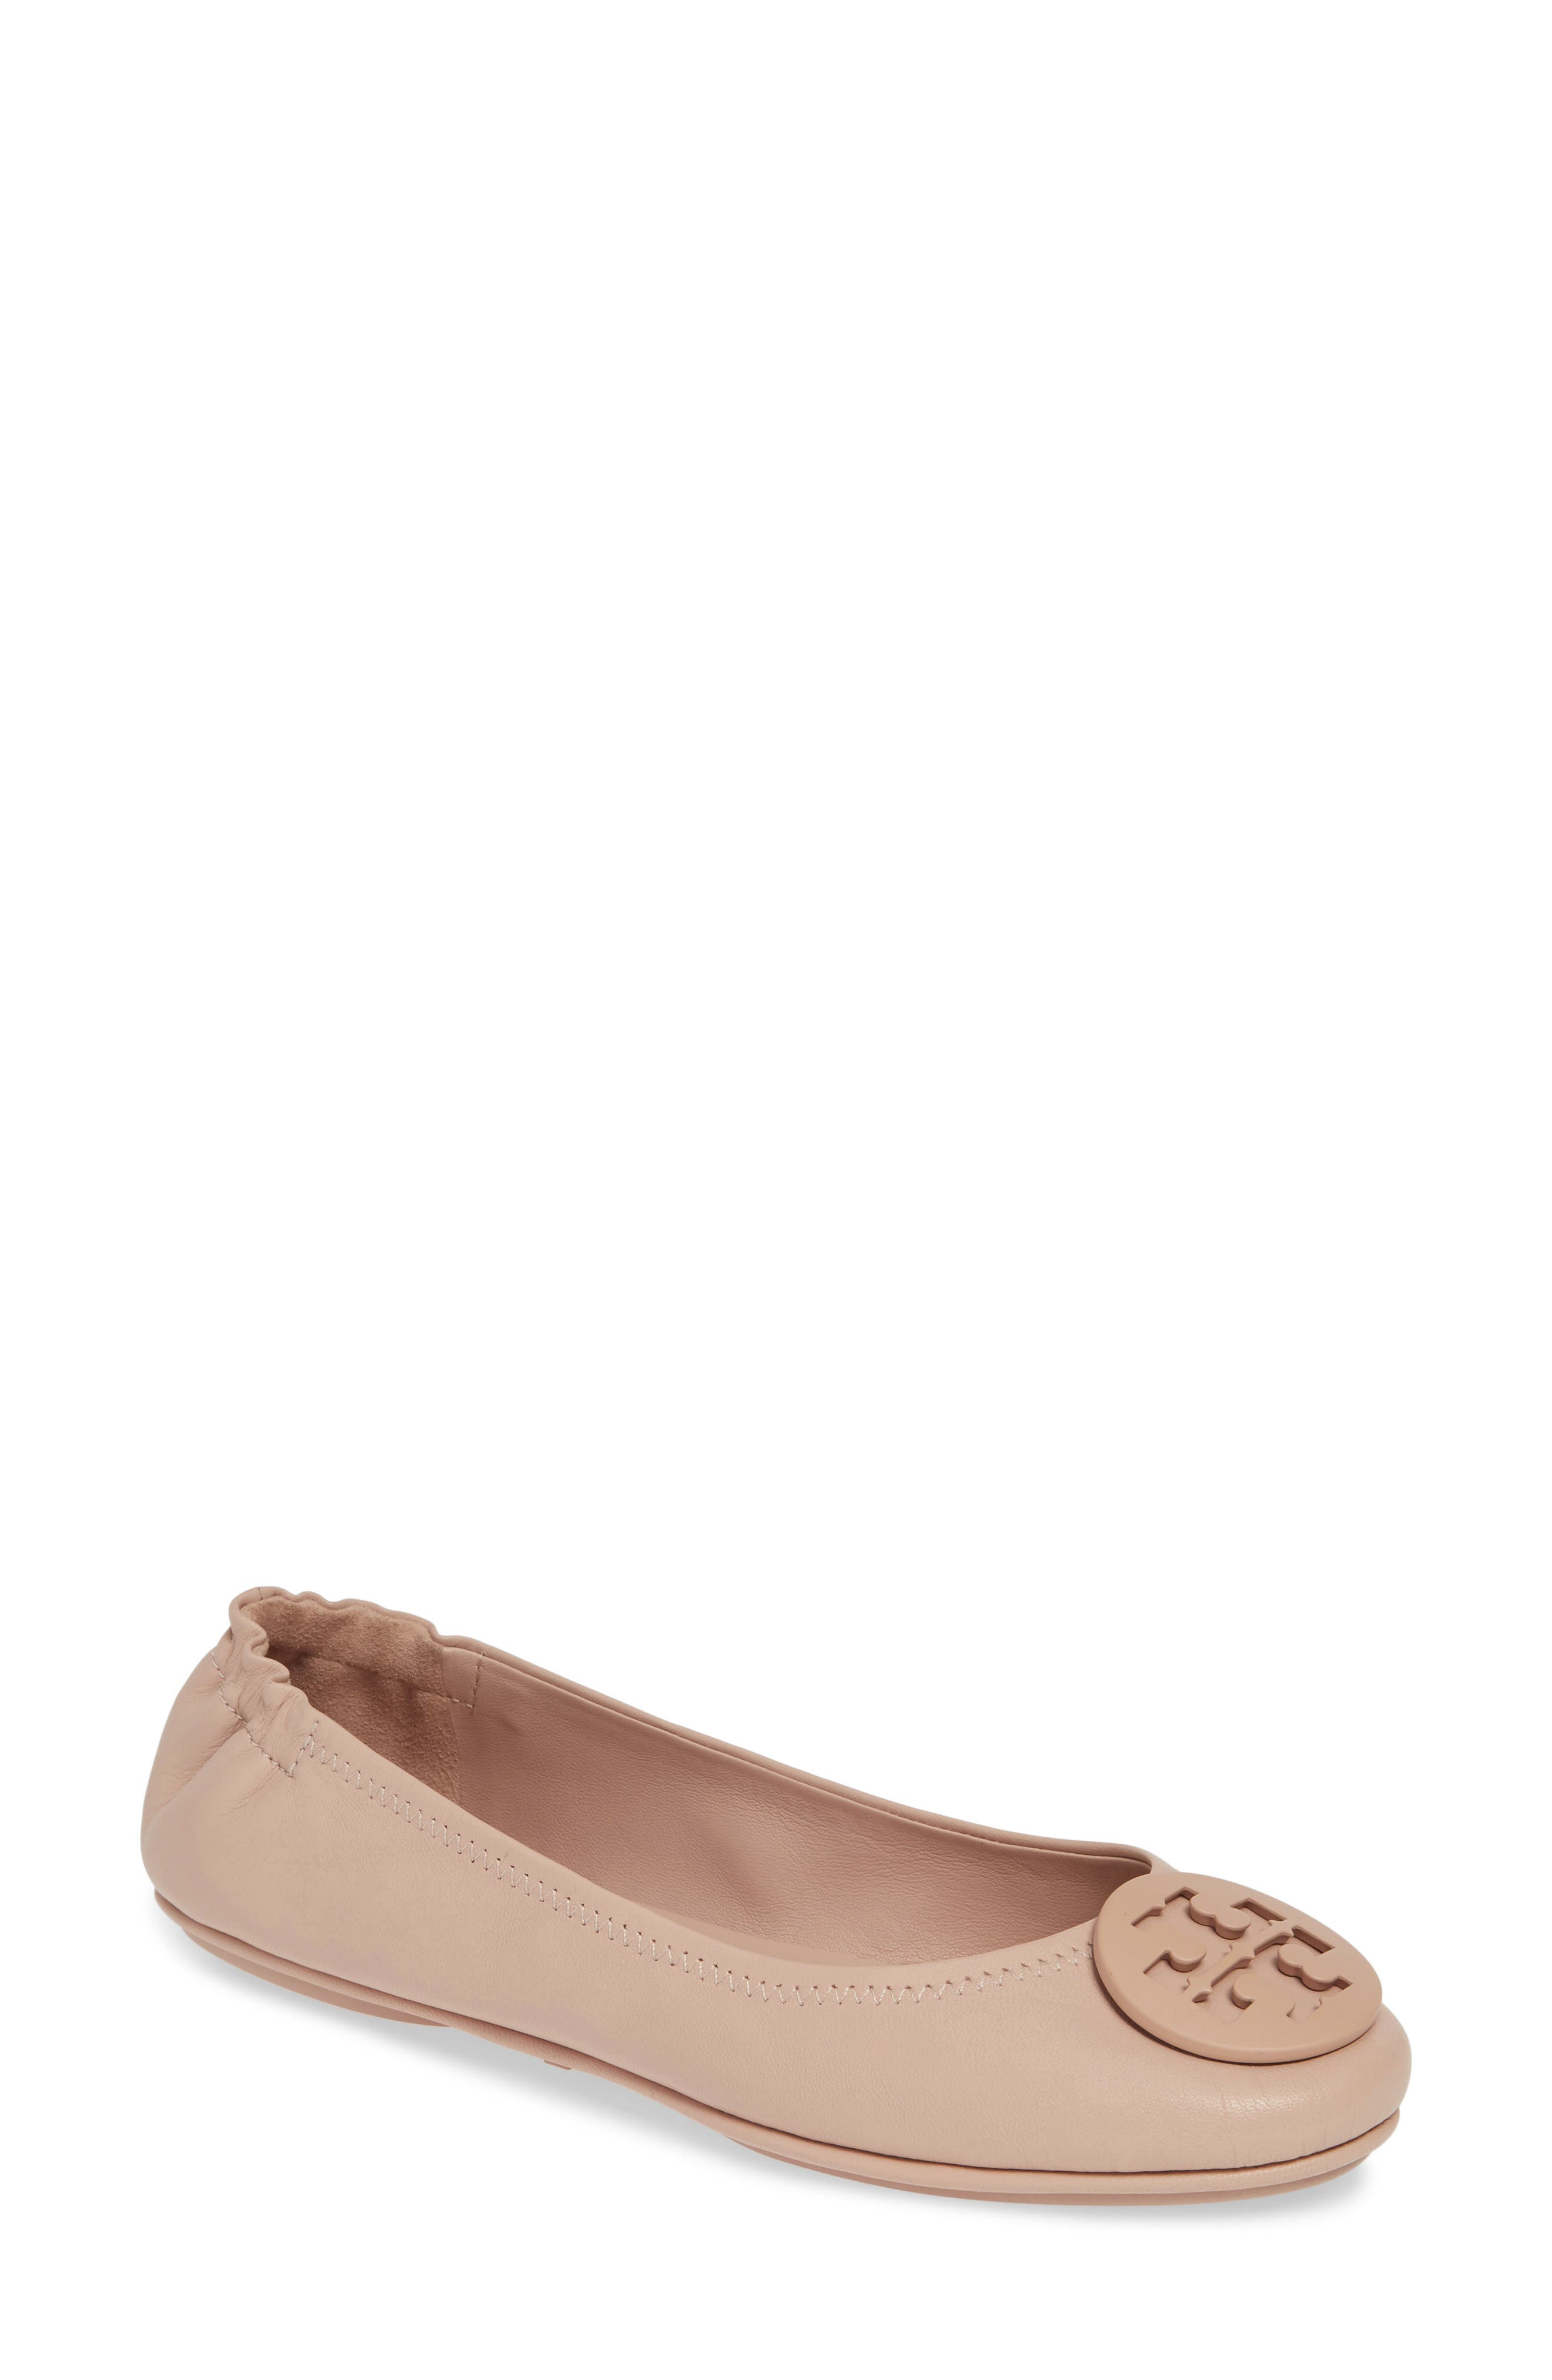 TORY BURCH 'Minnie' Travel Ballet Flat, Main, color, GOAN SAND/ SAND